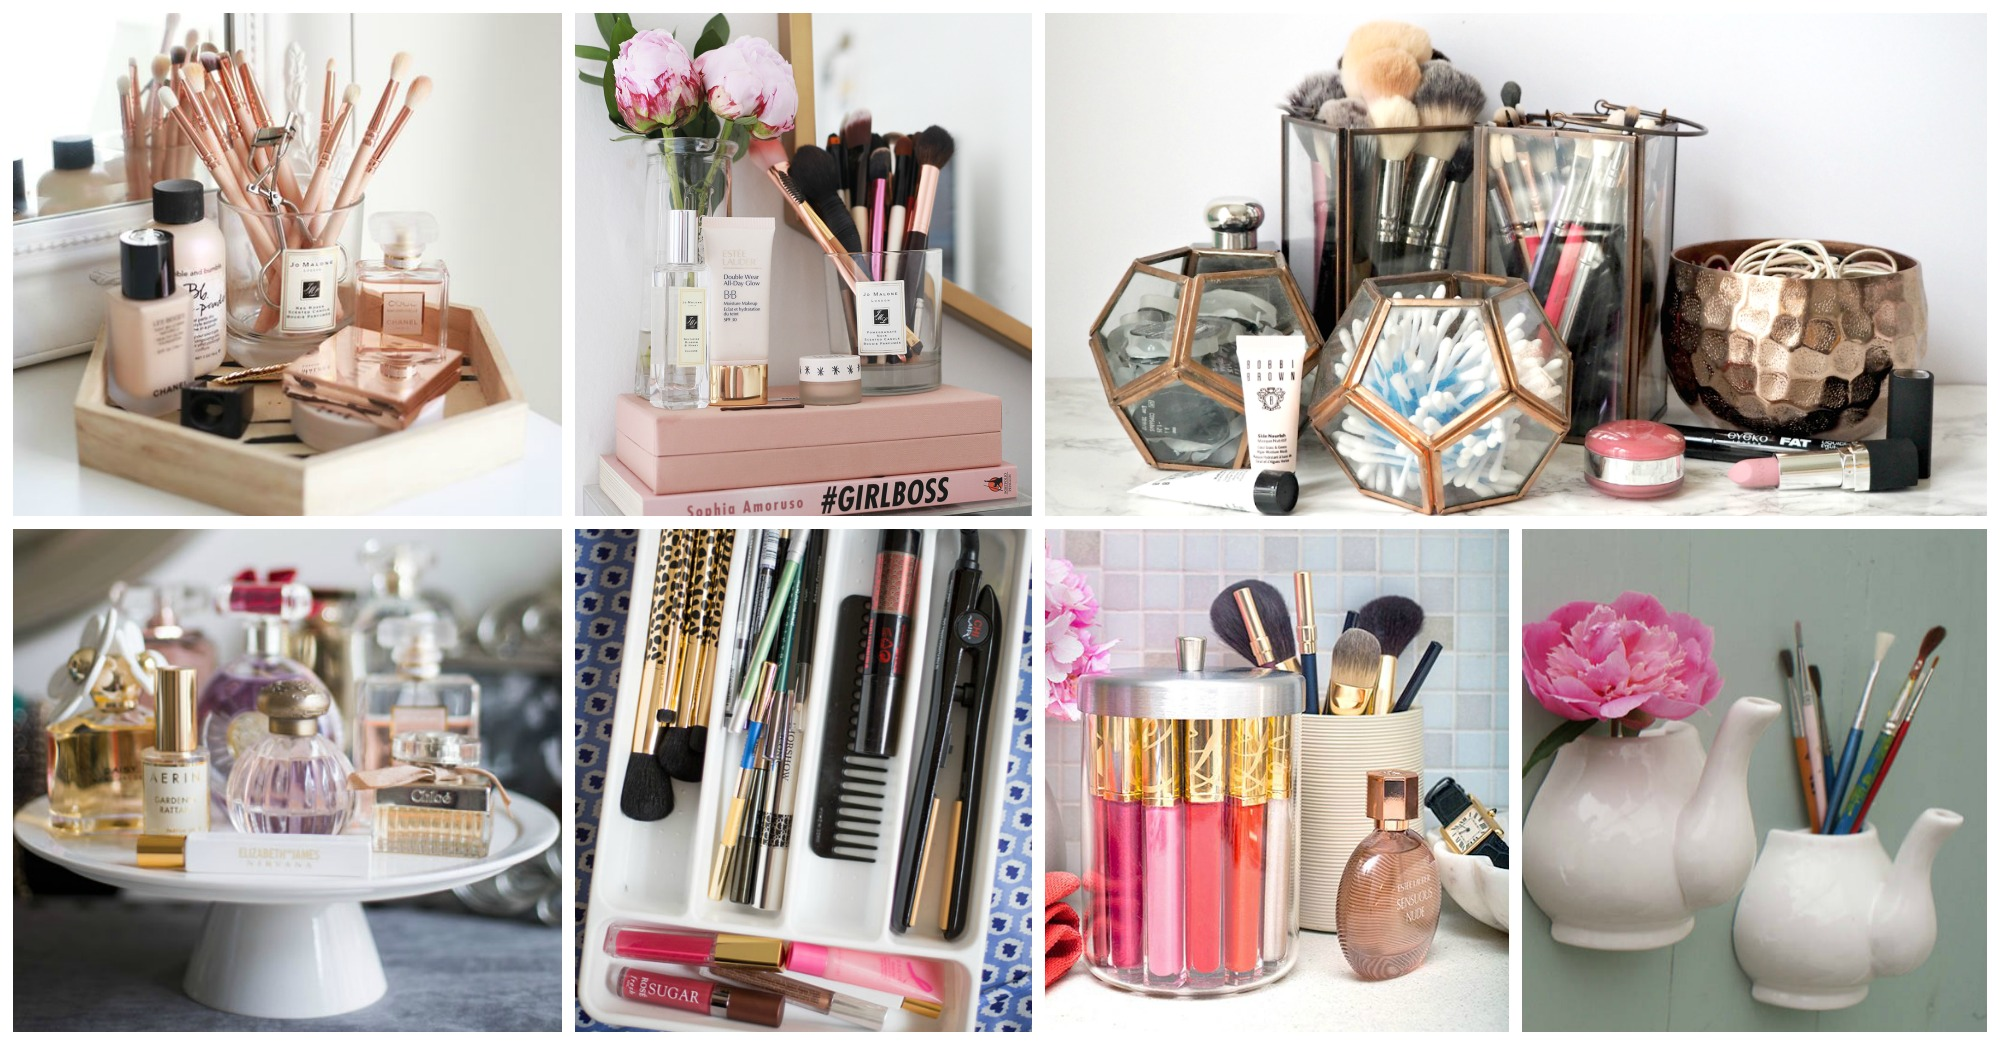 10 Awesome Makeup Storage Solutions You Have To See